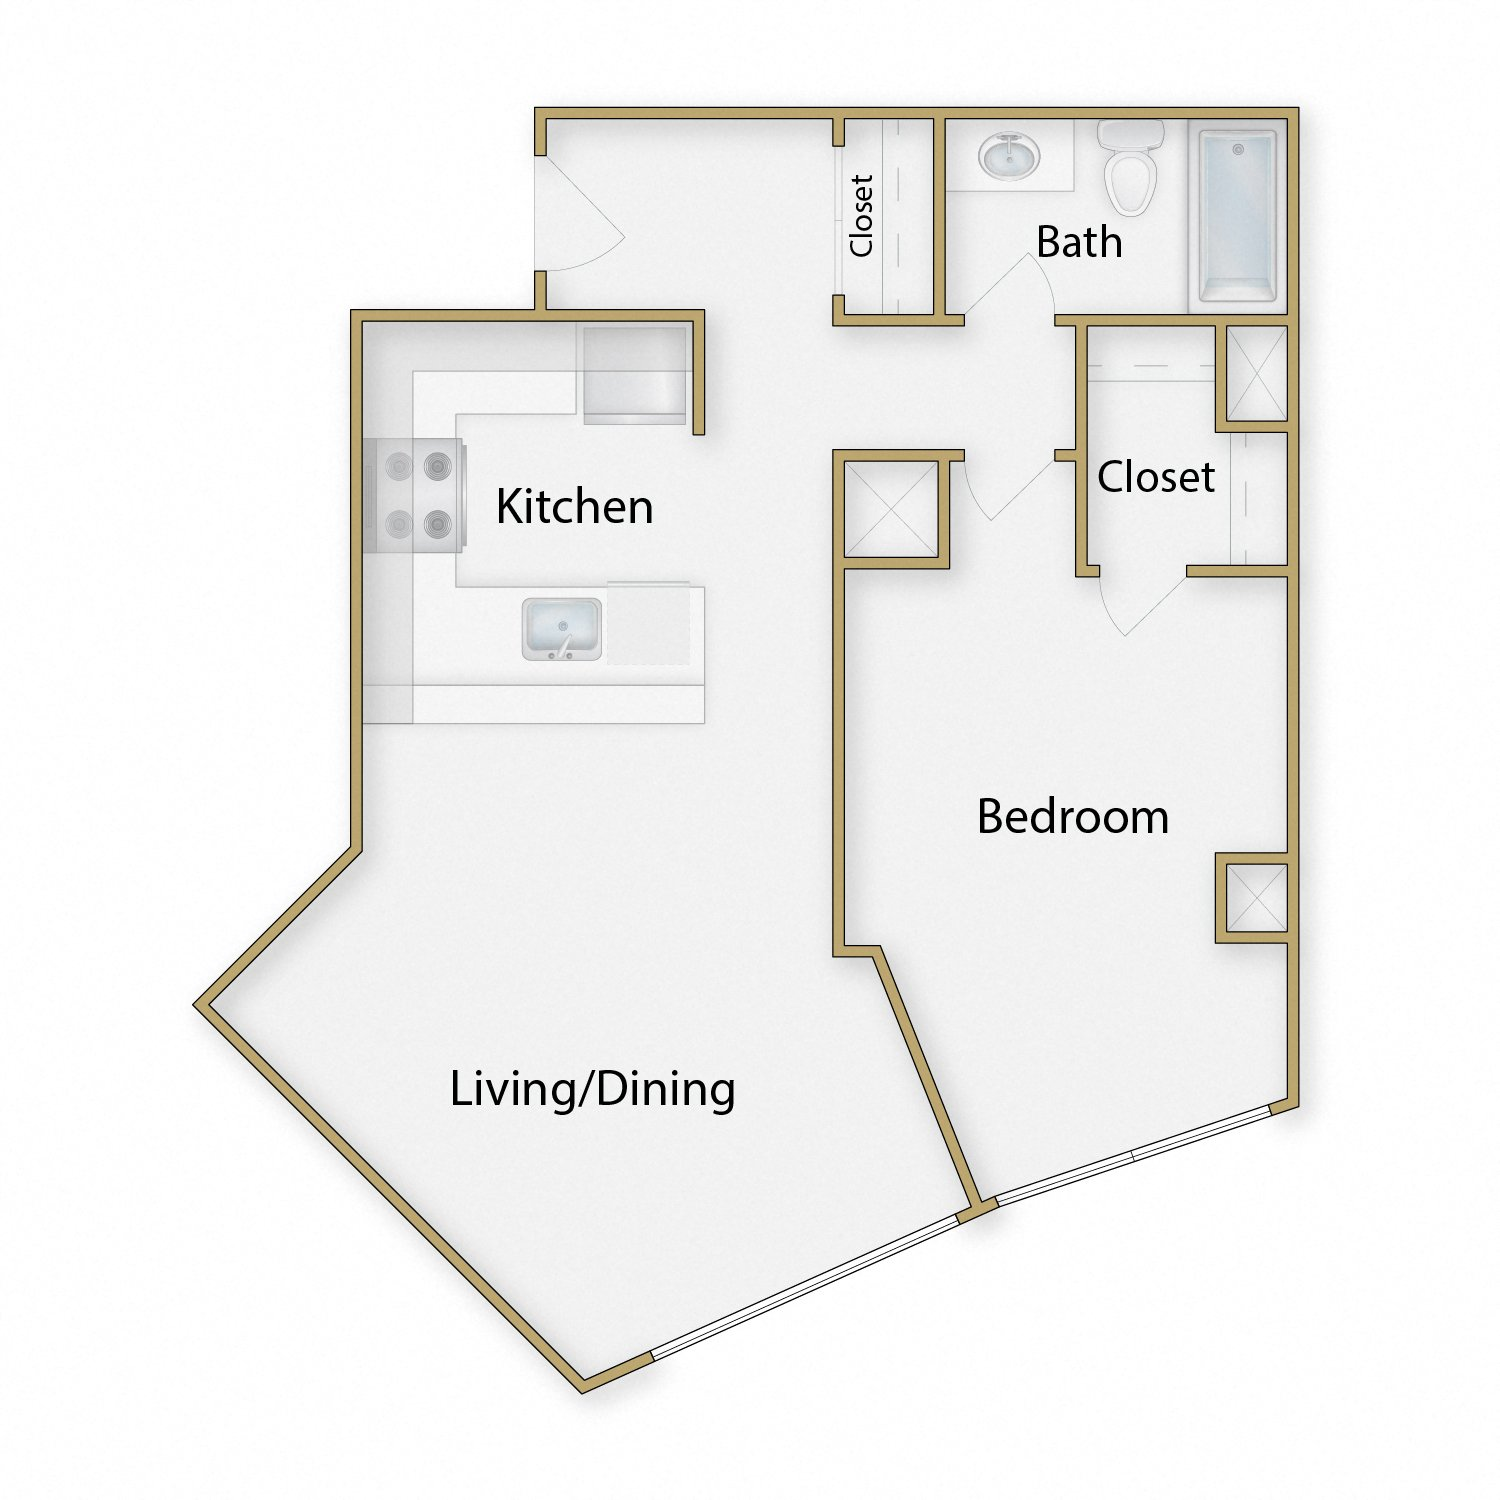 Marina floor plan diagram. One bedroom, one bathroom, and an open kitchen dining and living area.